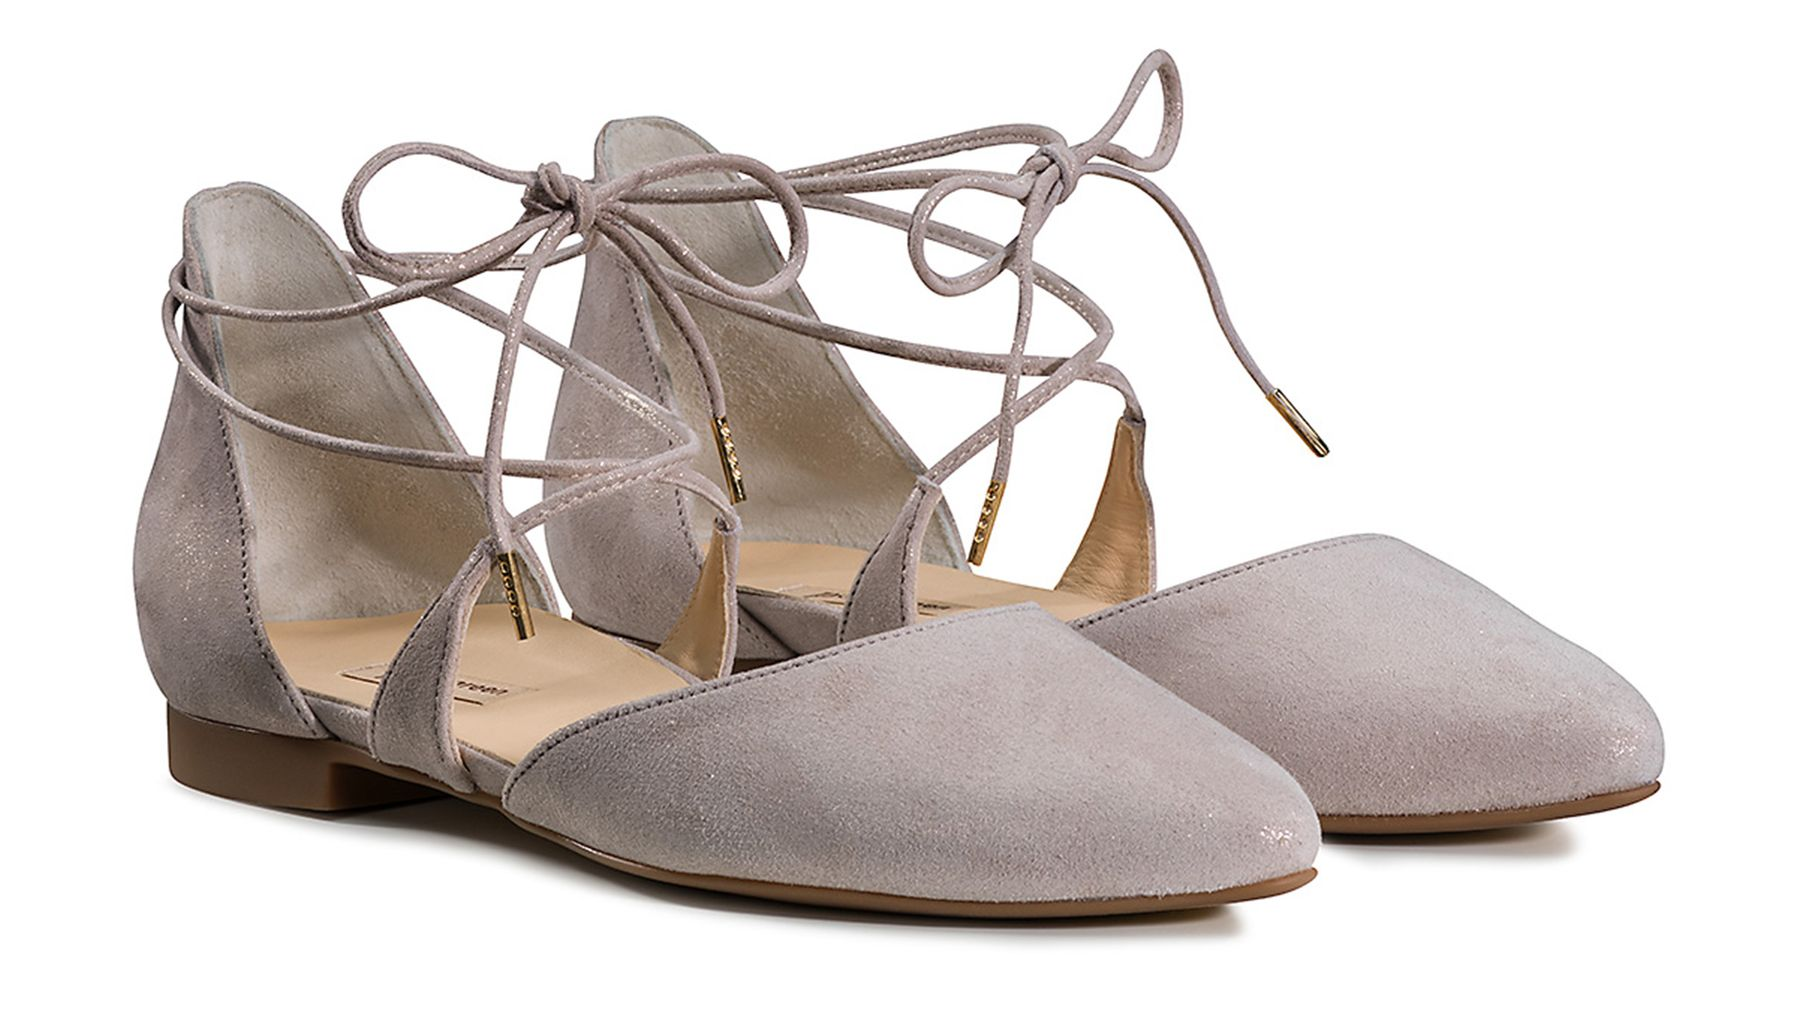 sports shoes 2c44c a235e Playful Lace Up Ballerinas in Beige - Paul Green